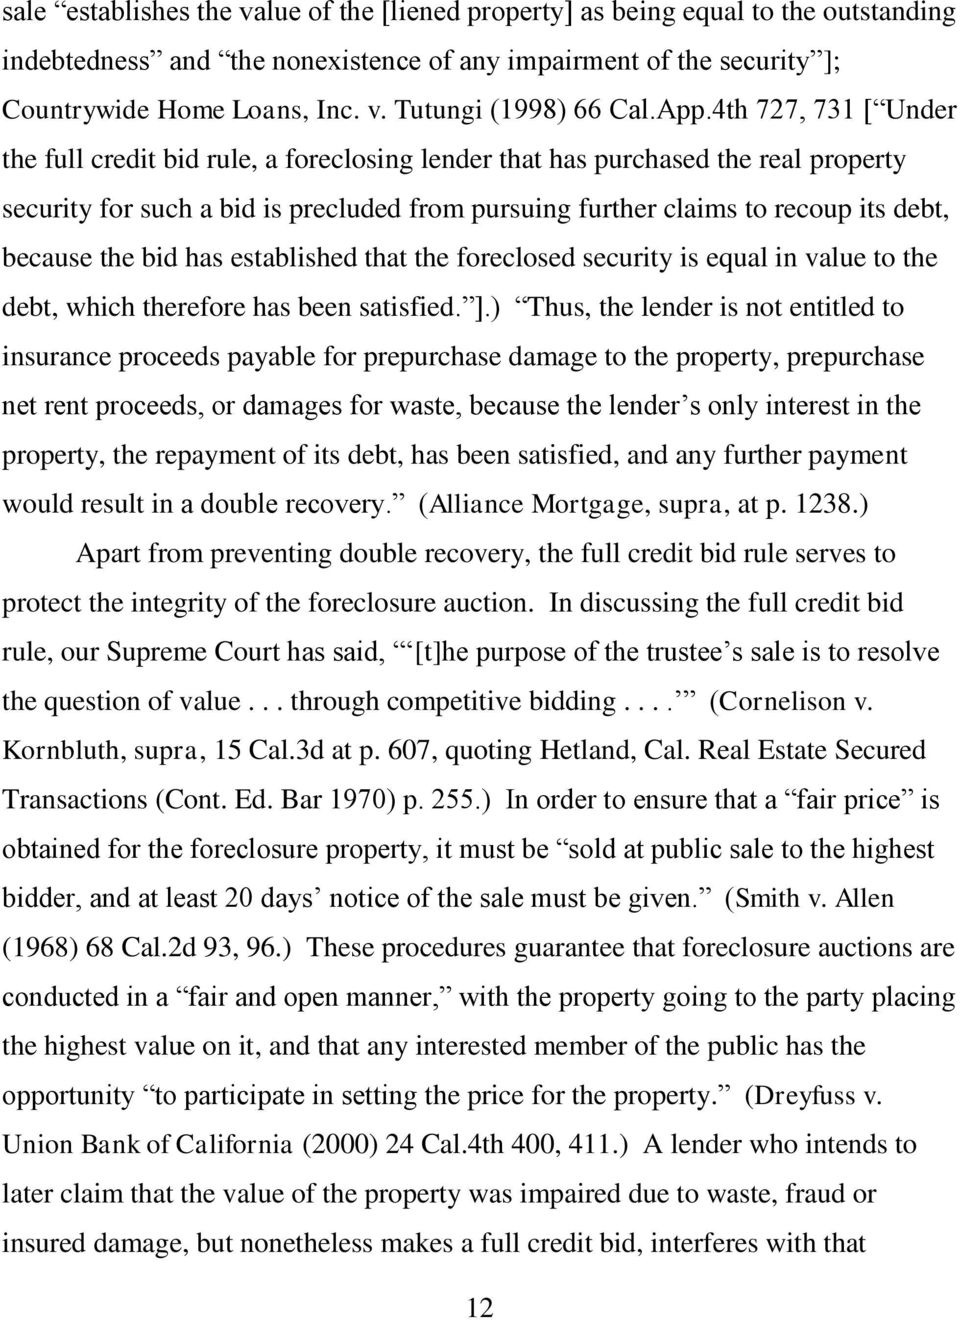 because the bid has established that the foreclosed security is equal in value to the debt, which therefore has been satisfied. ].